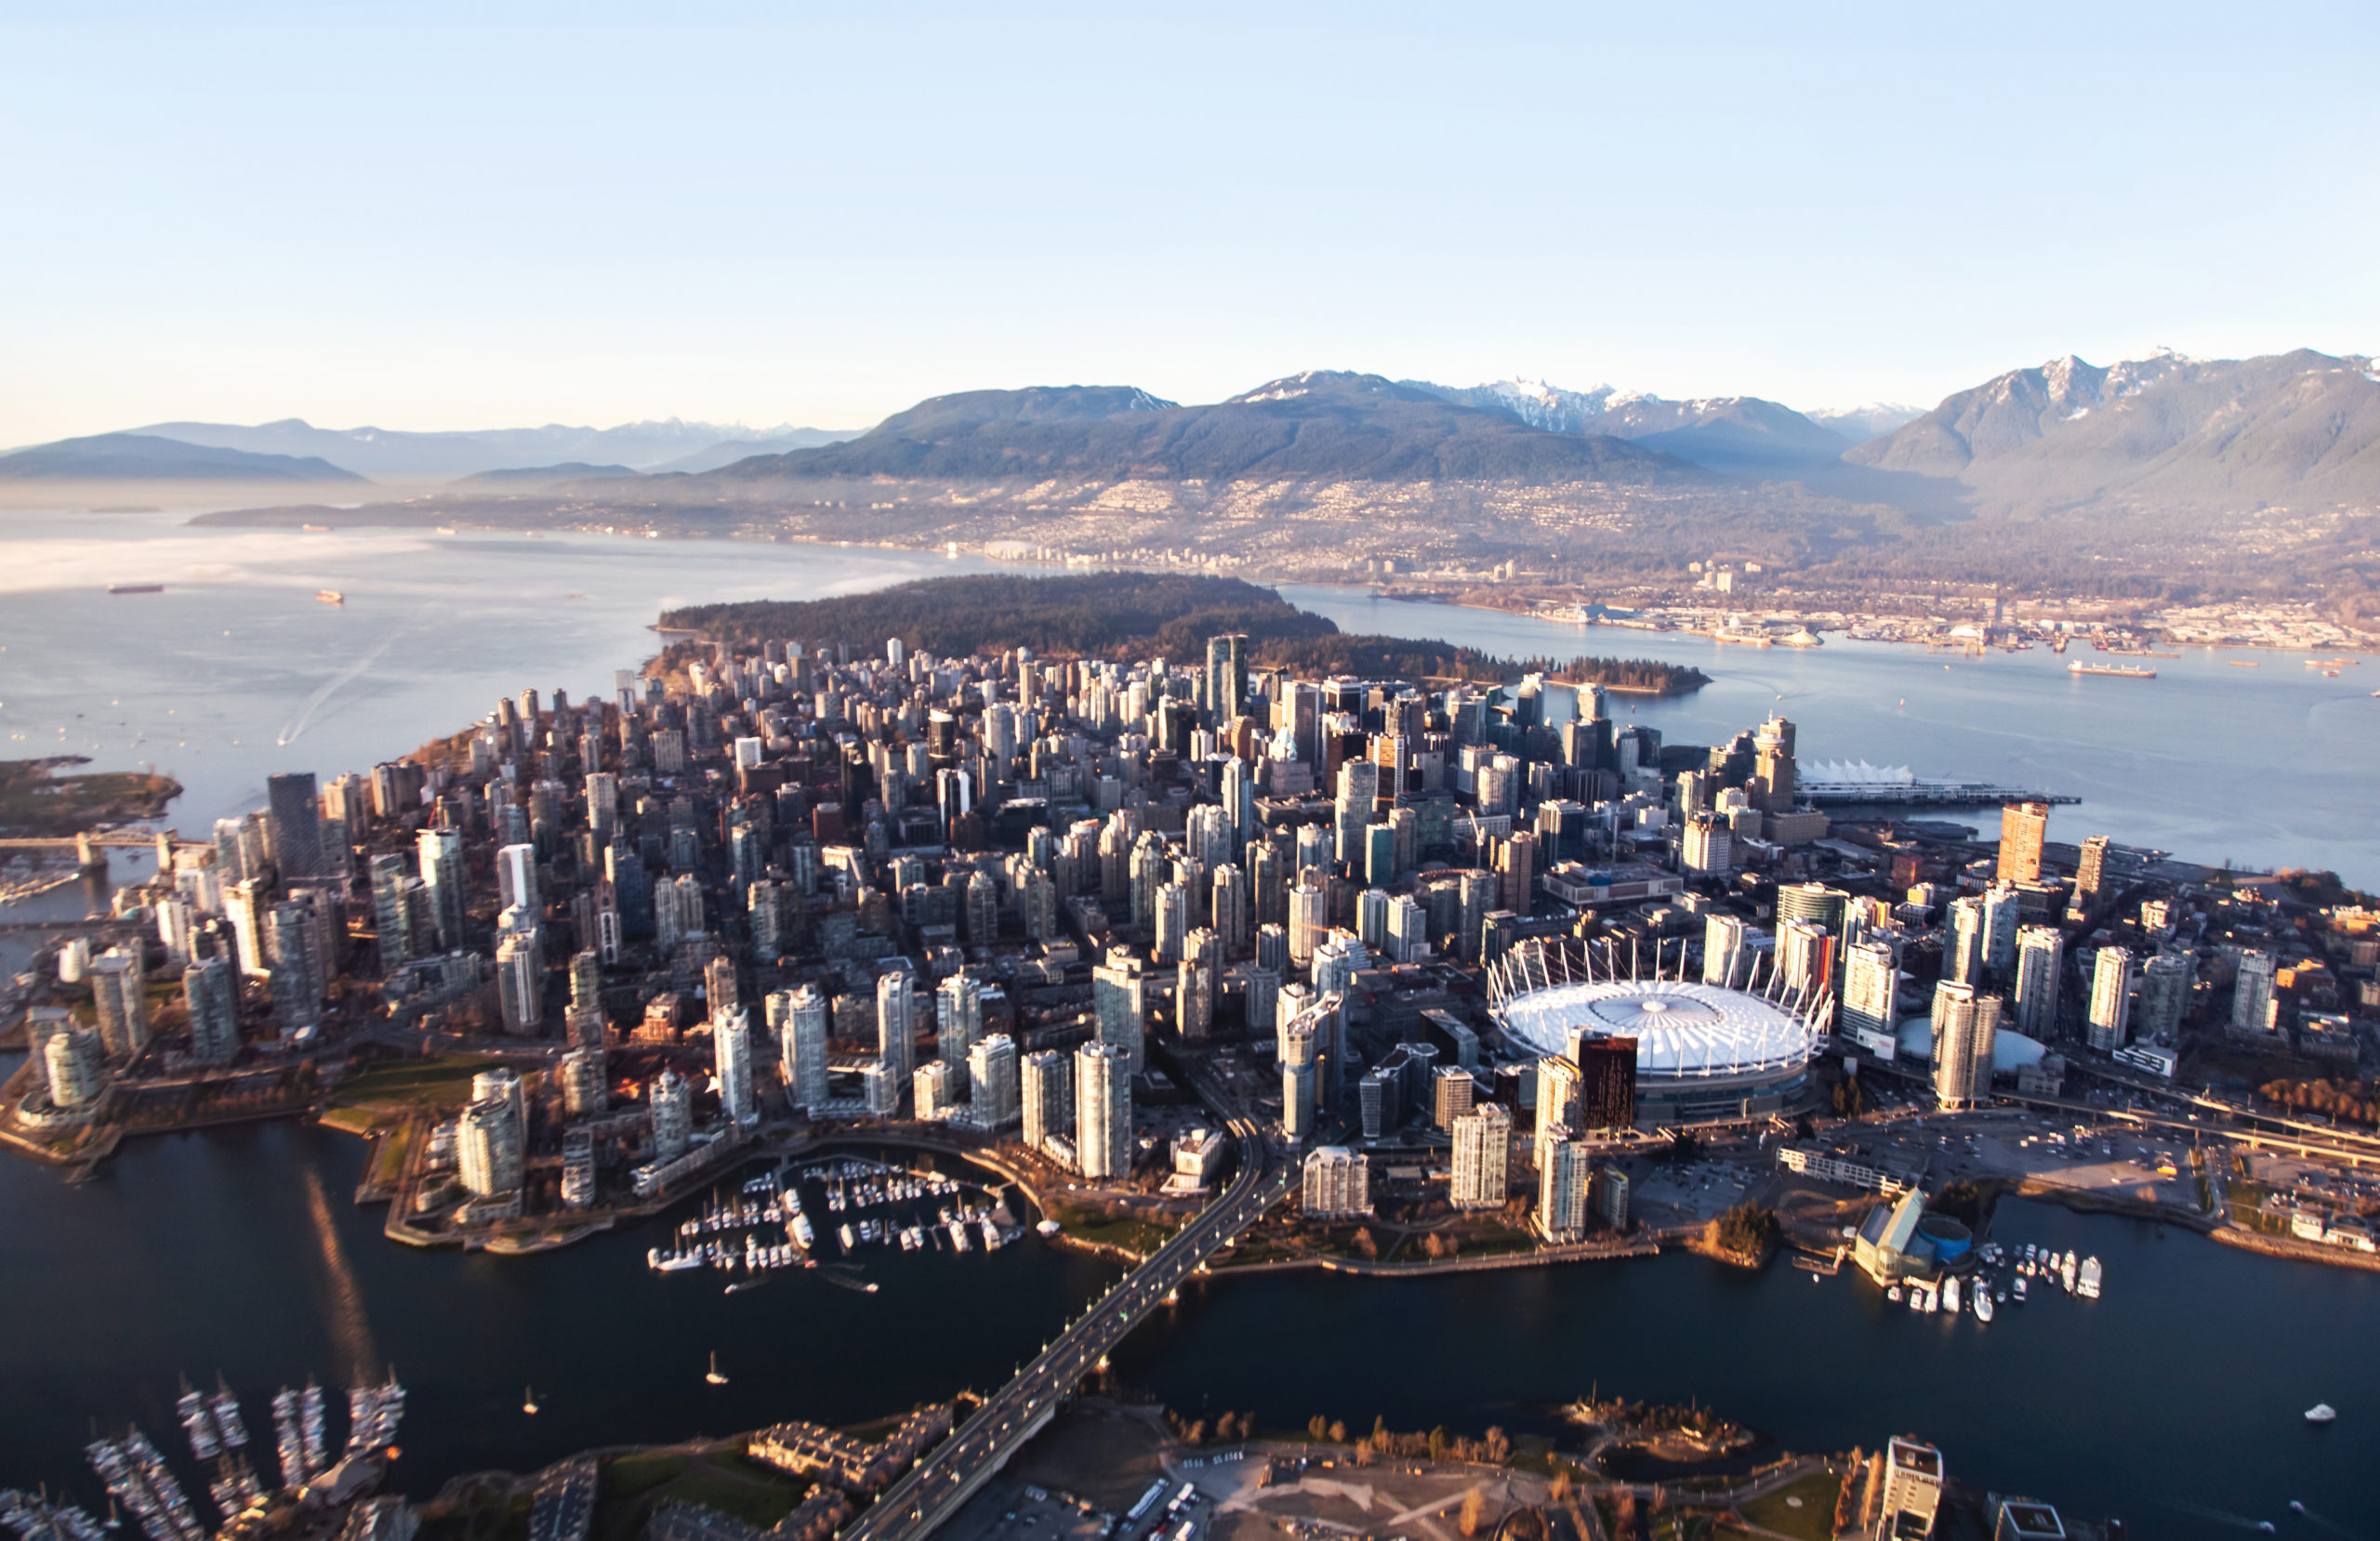 Uk immigration lawyers in Vancouver Canada who specialize in assisting Canadian citizens with UK visa applications